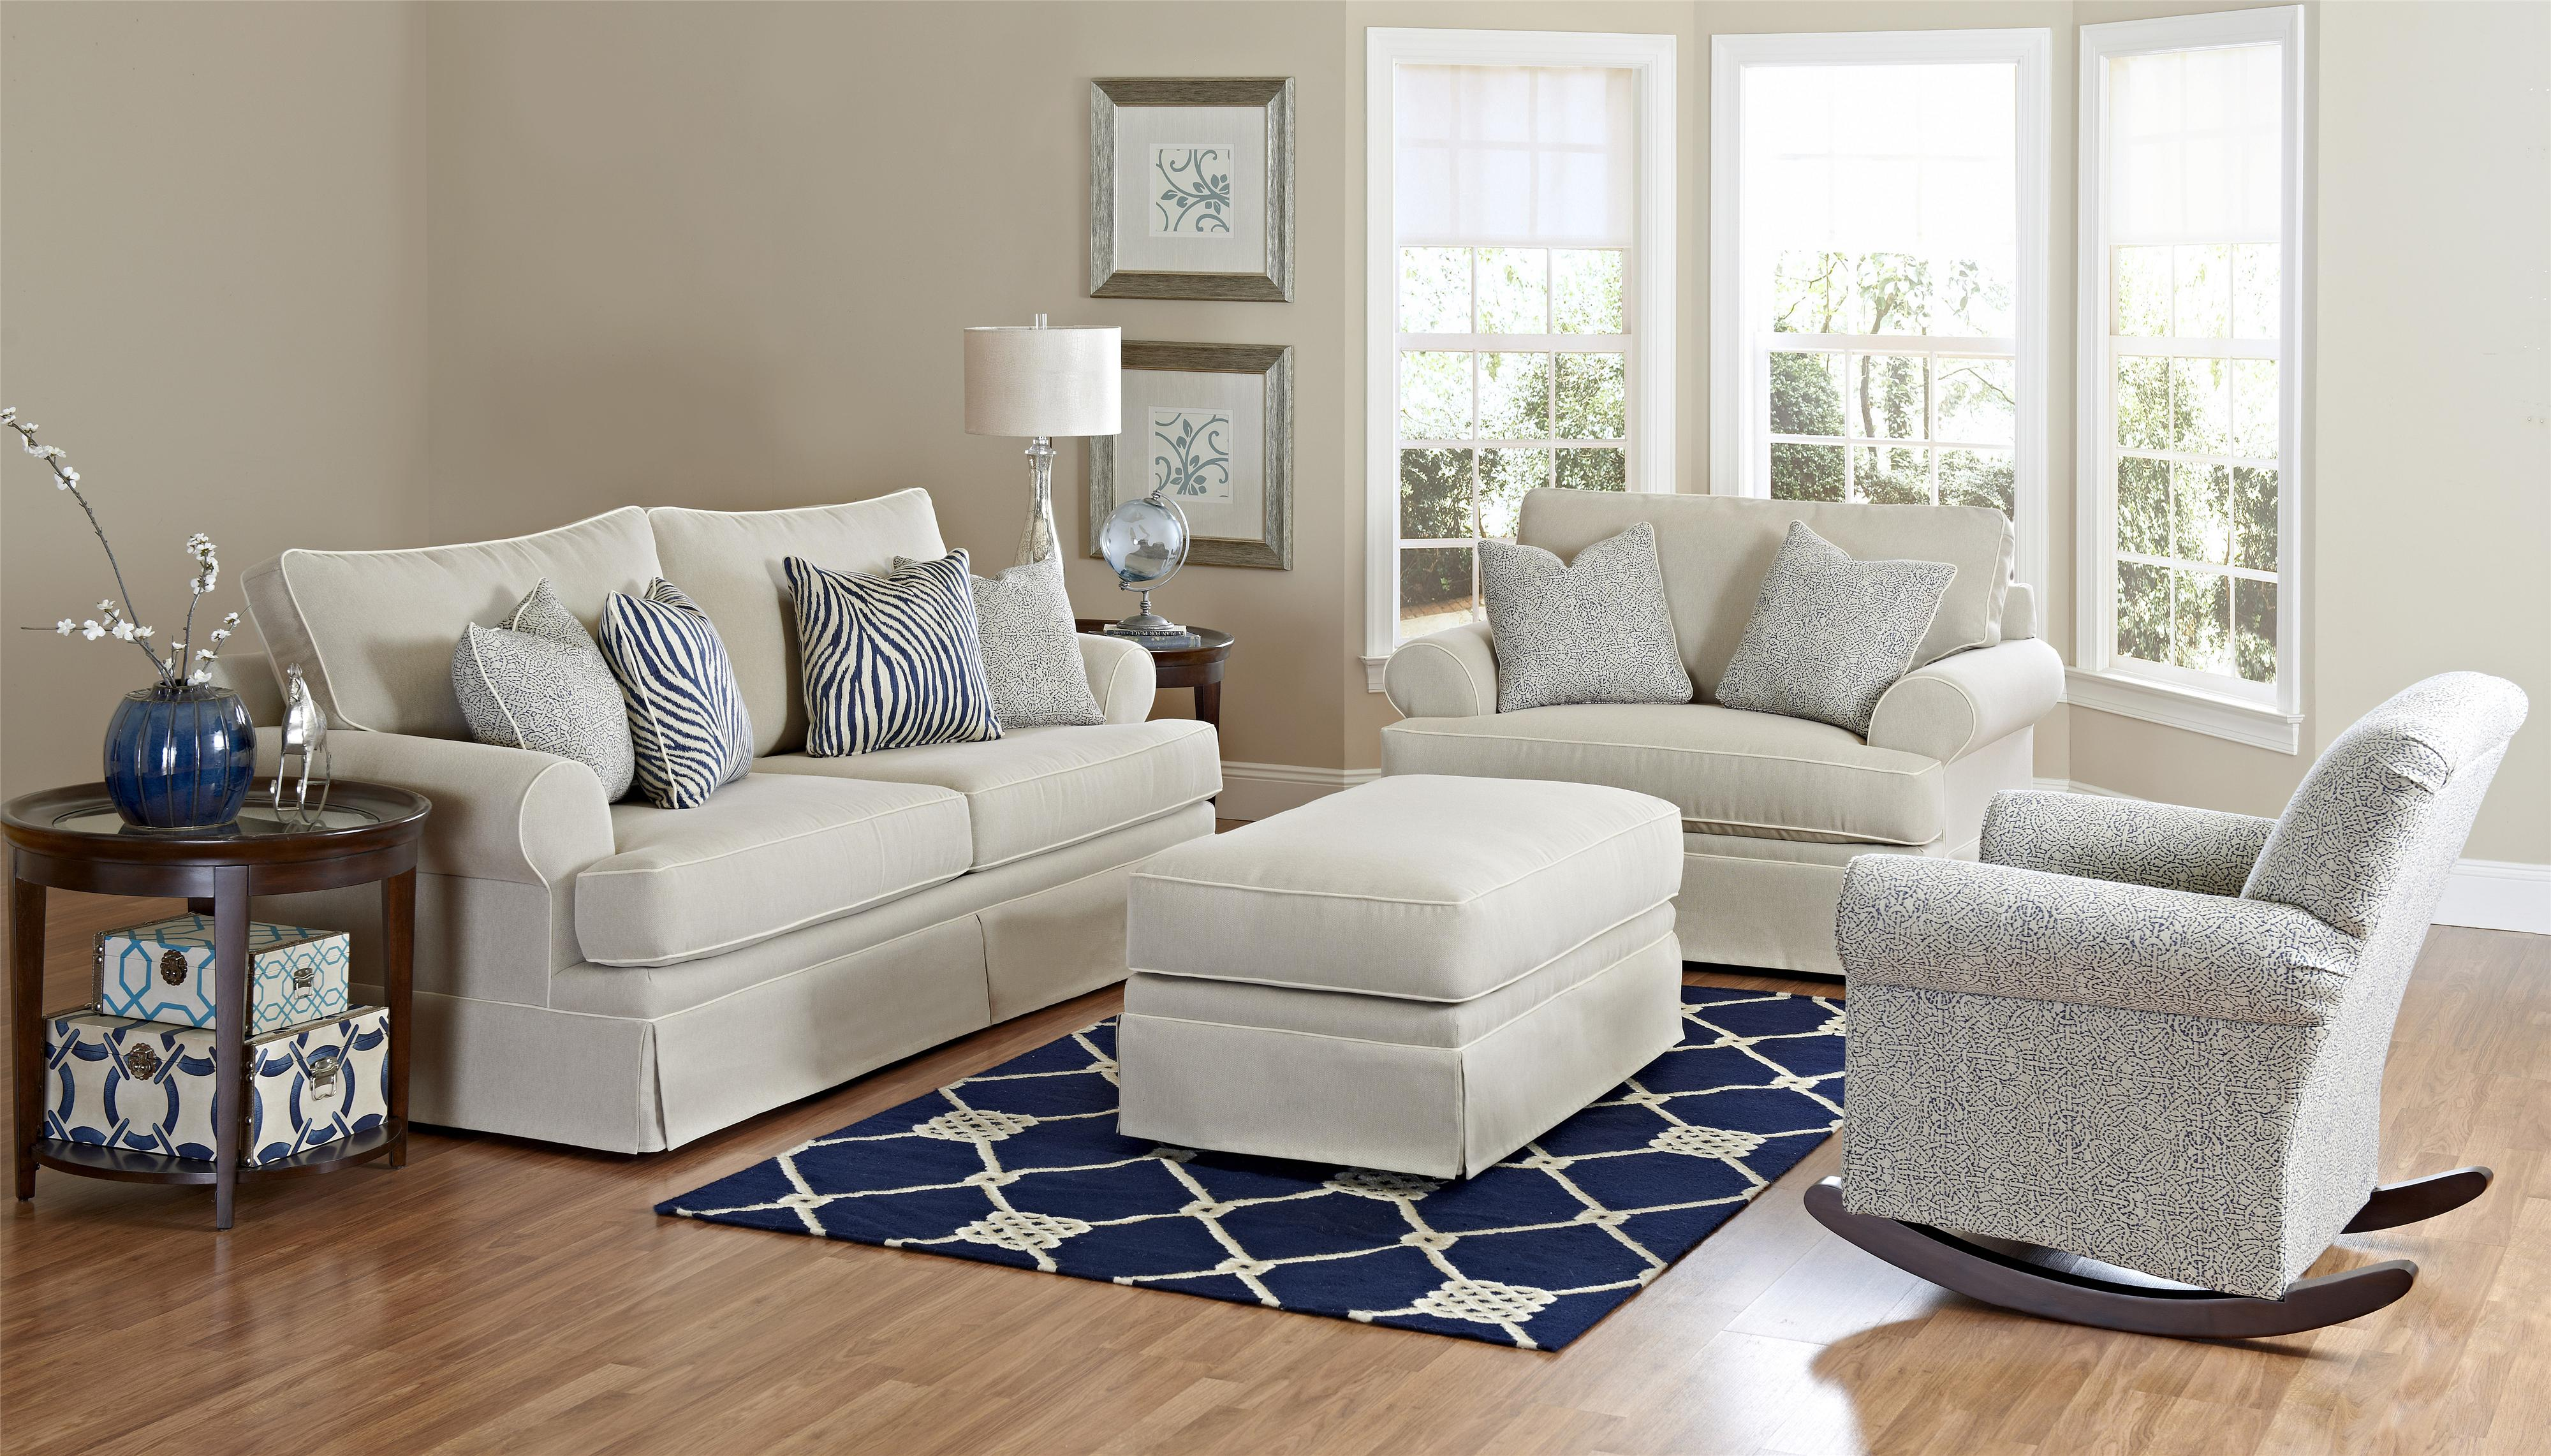 Klaussner Westerly Living Room Group Value City Furniture Stationary Living Room Groups